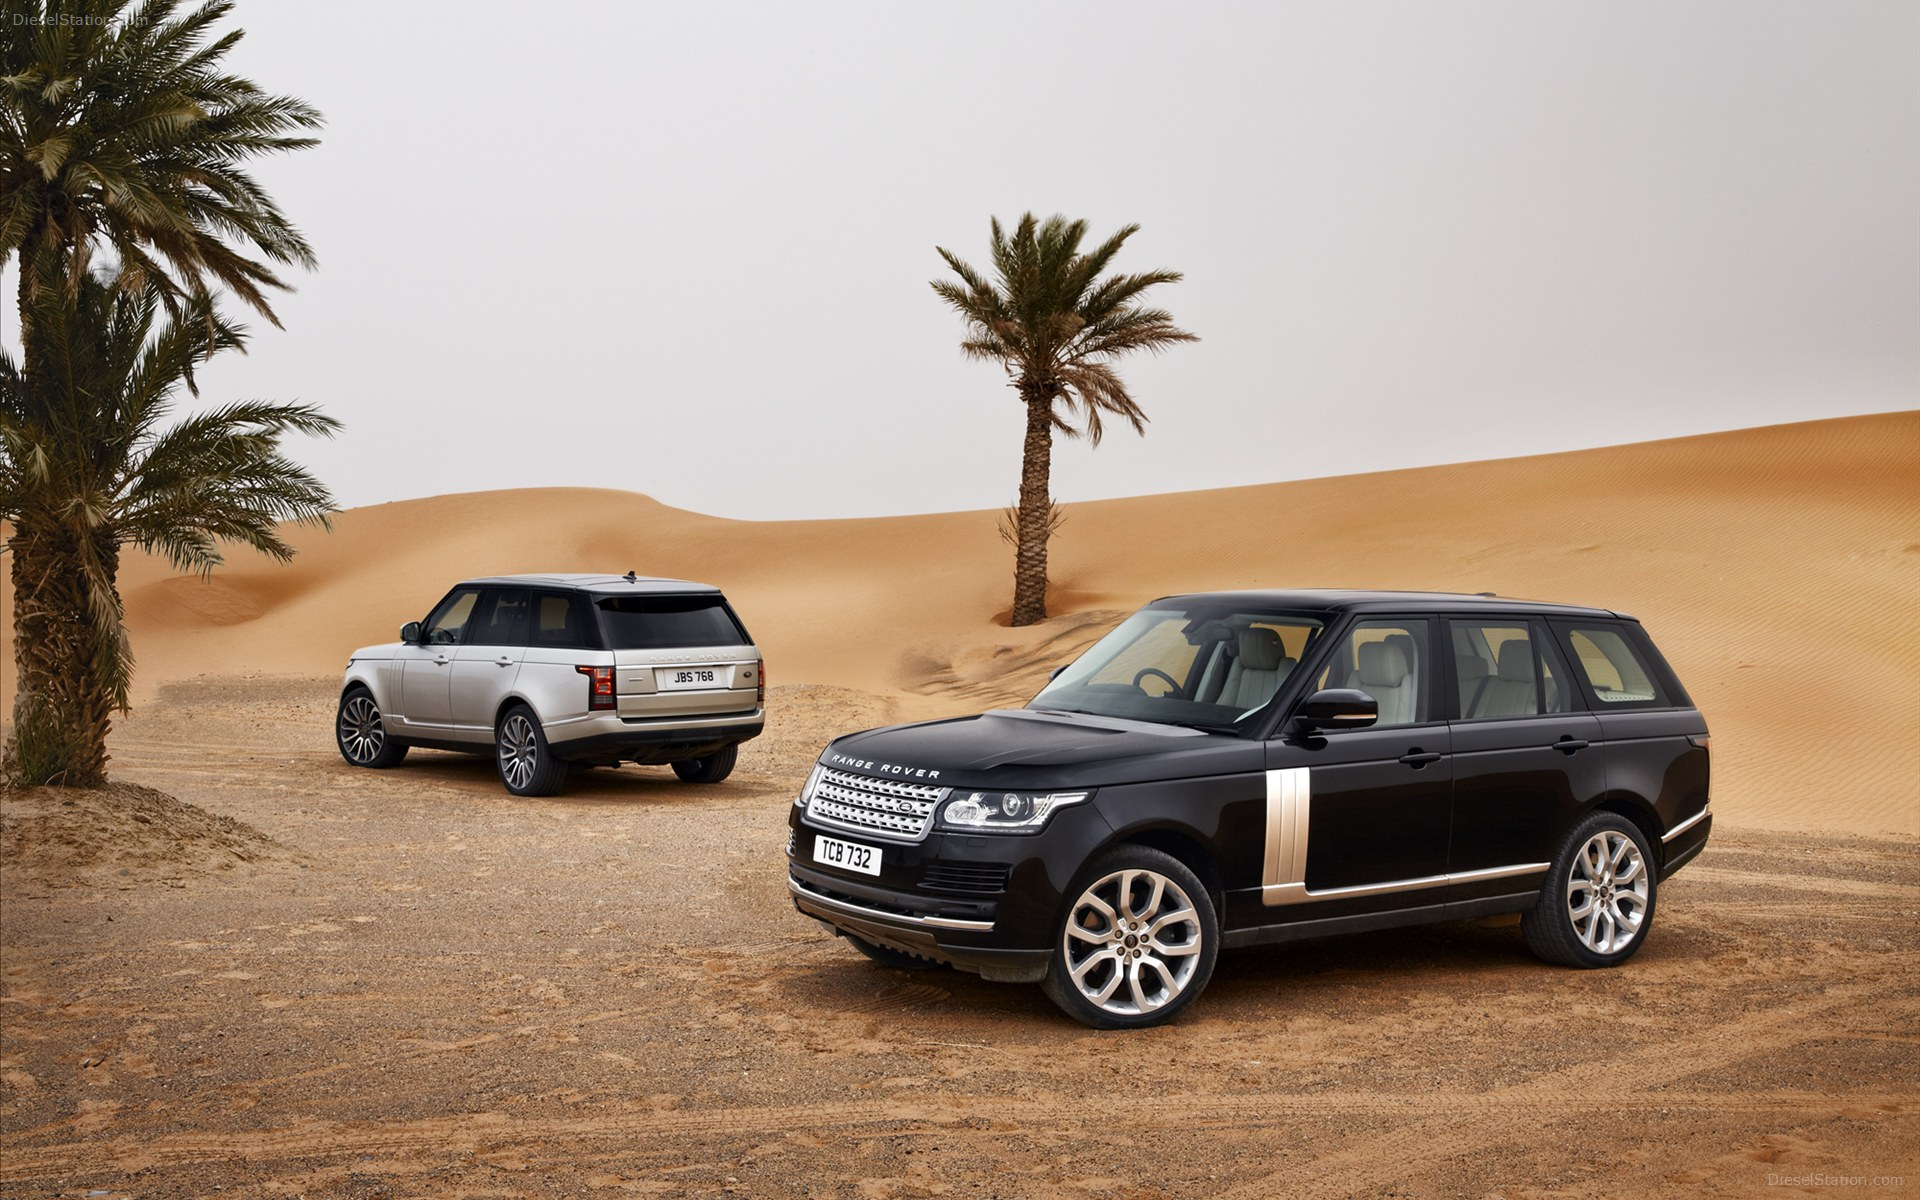 range rover hd wallpapers full hd pictures. Black Bedroom Furniture Sets. Home Design Ideas